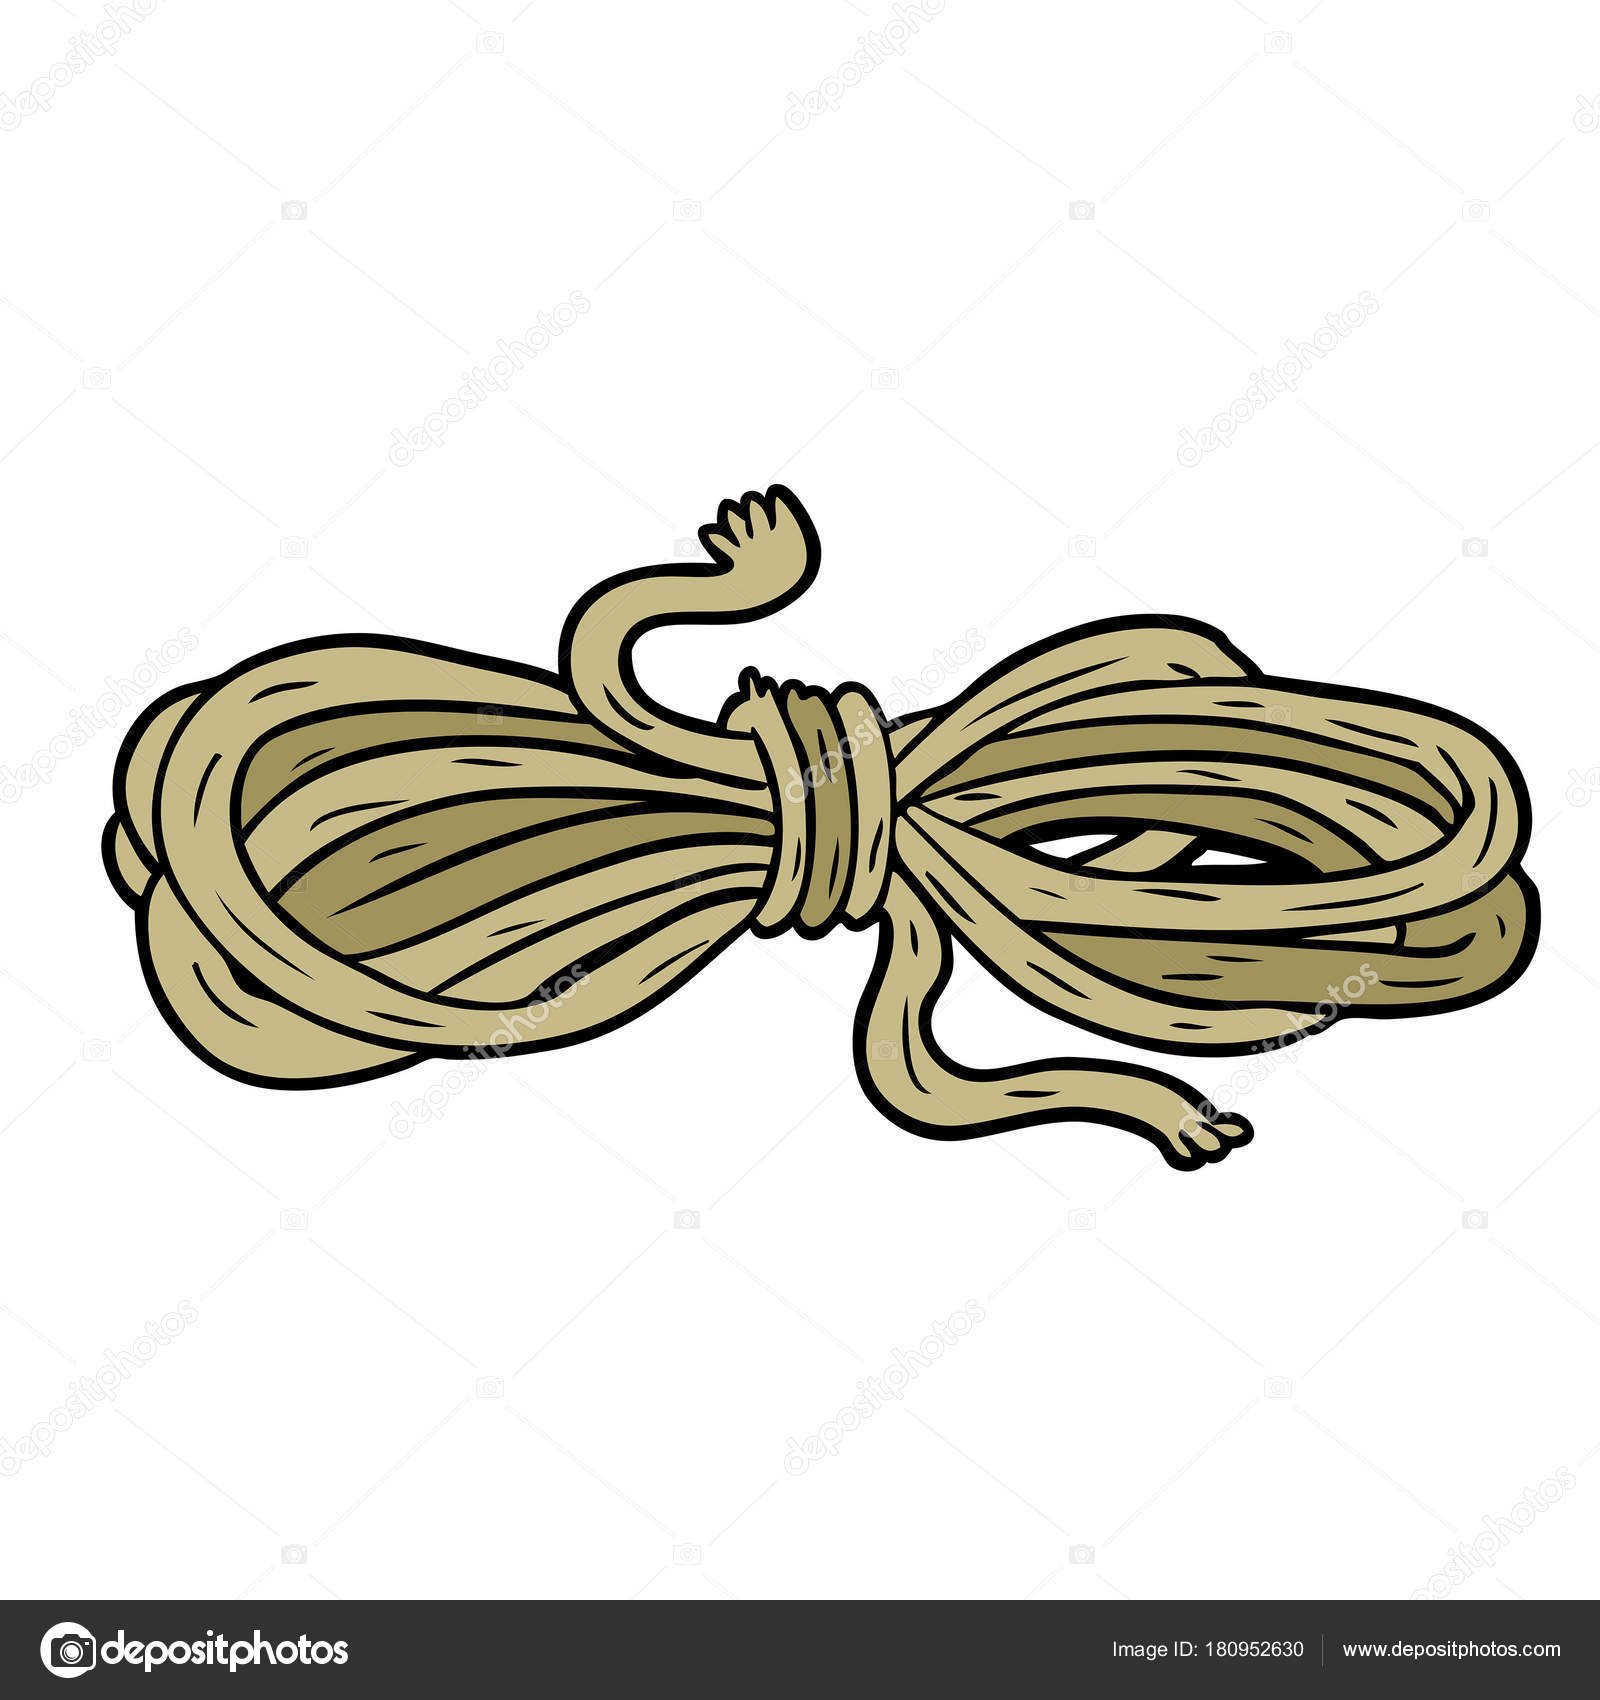 Vector Illustration Cartoon Rope Stock Vector C Lineartestpilot 180952630